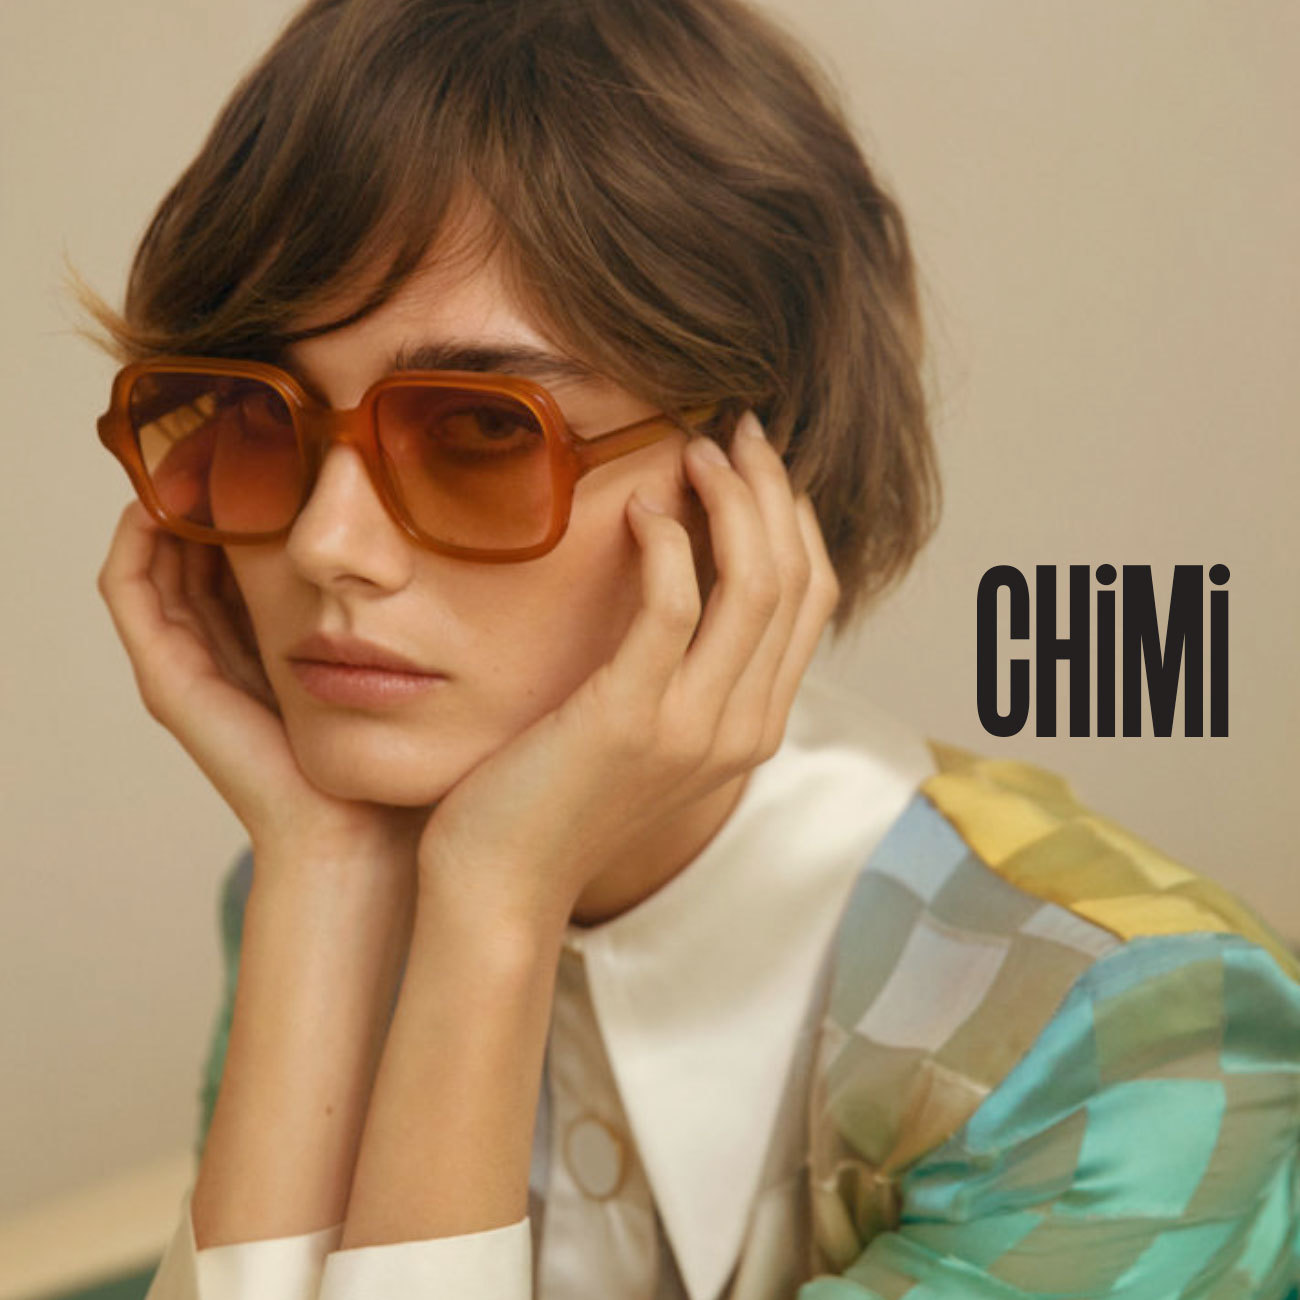 chimi-profile-brand2